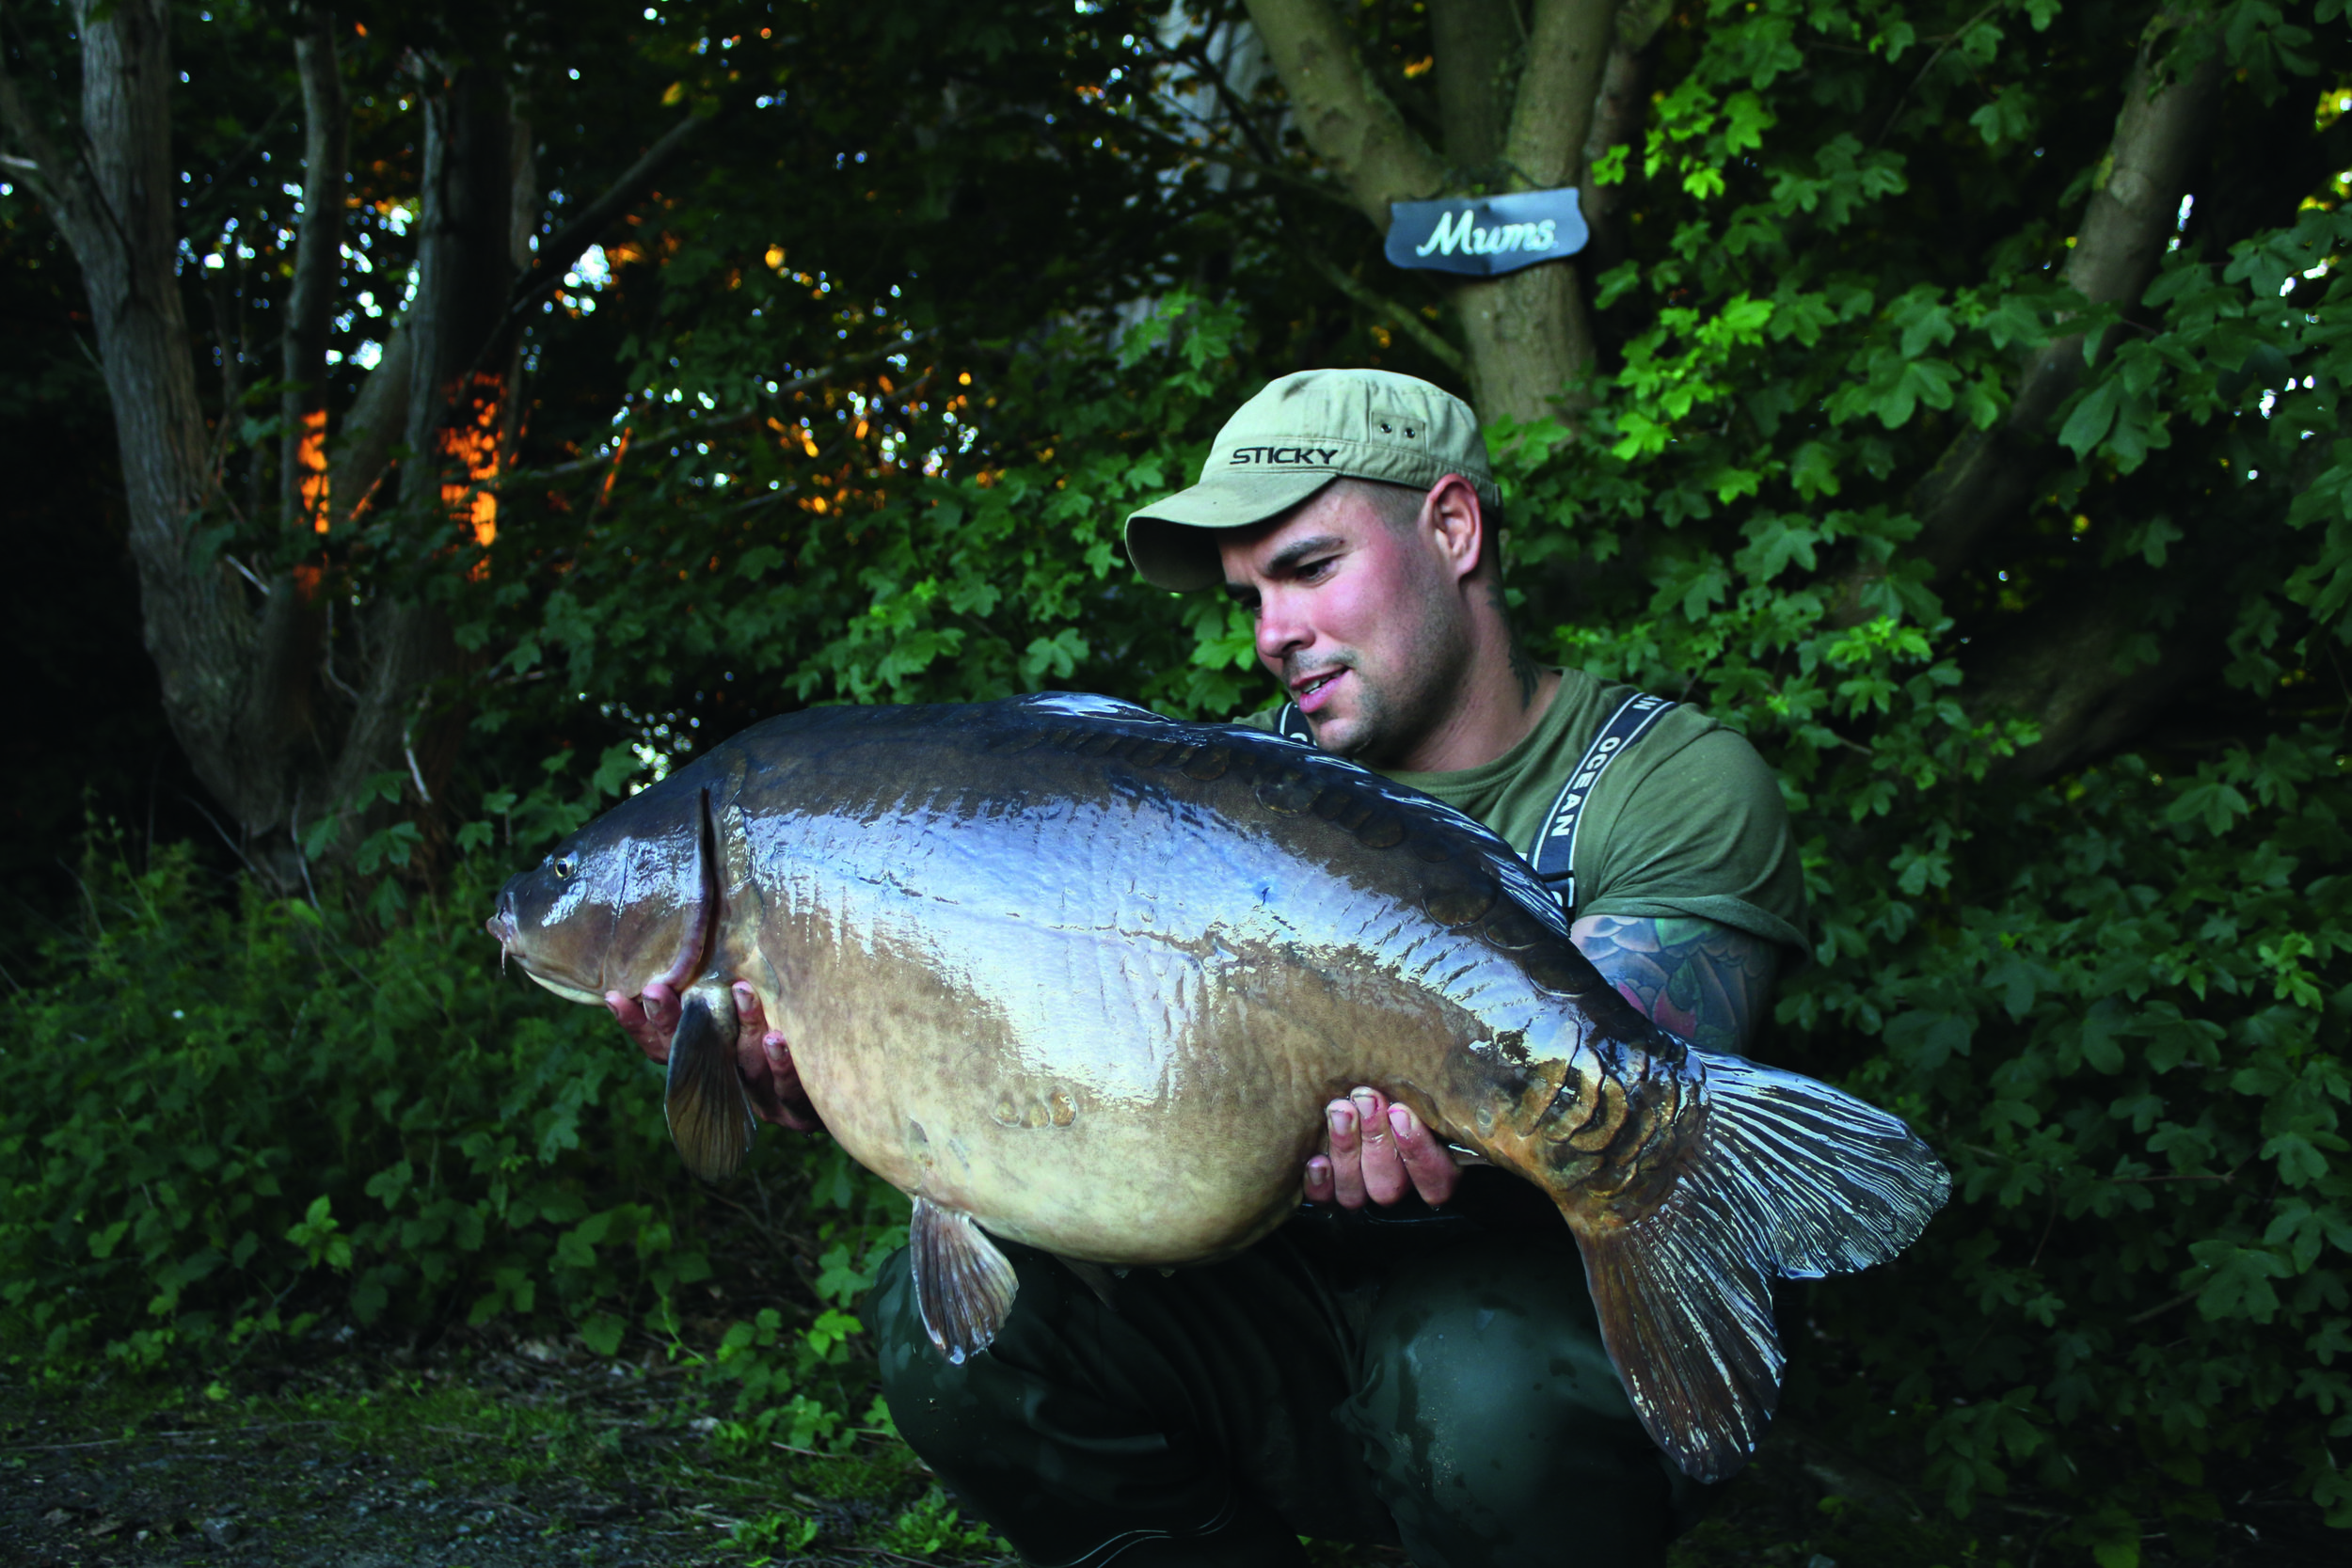 The Pikey Mirror at over 35lb, another lovely Manor fish.